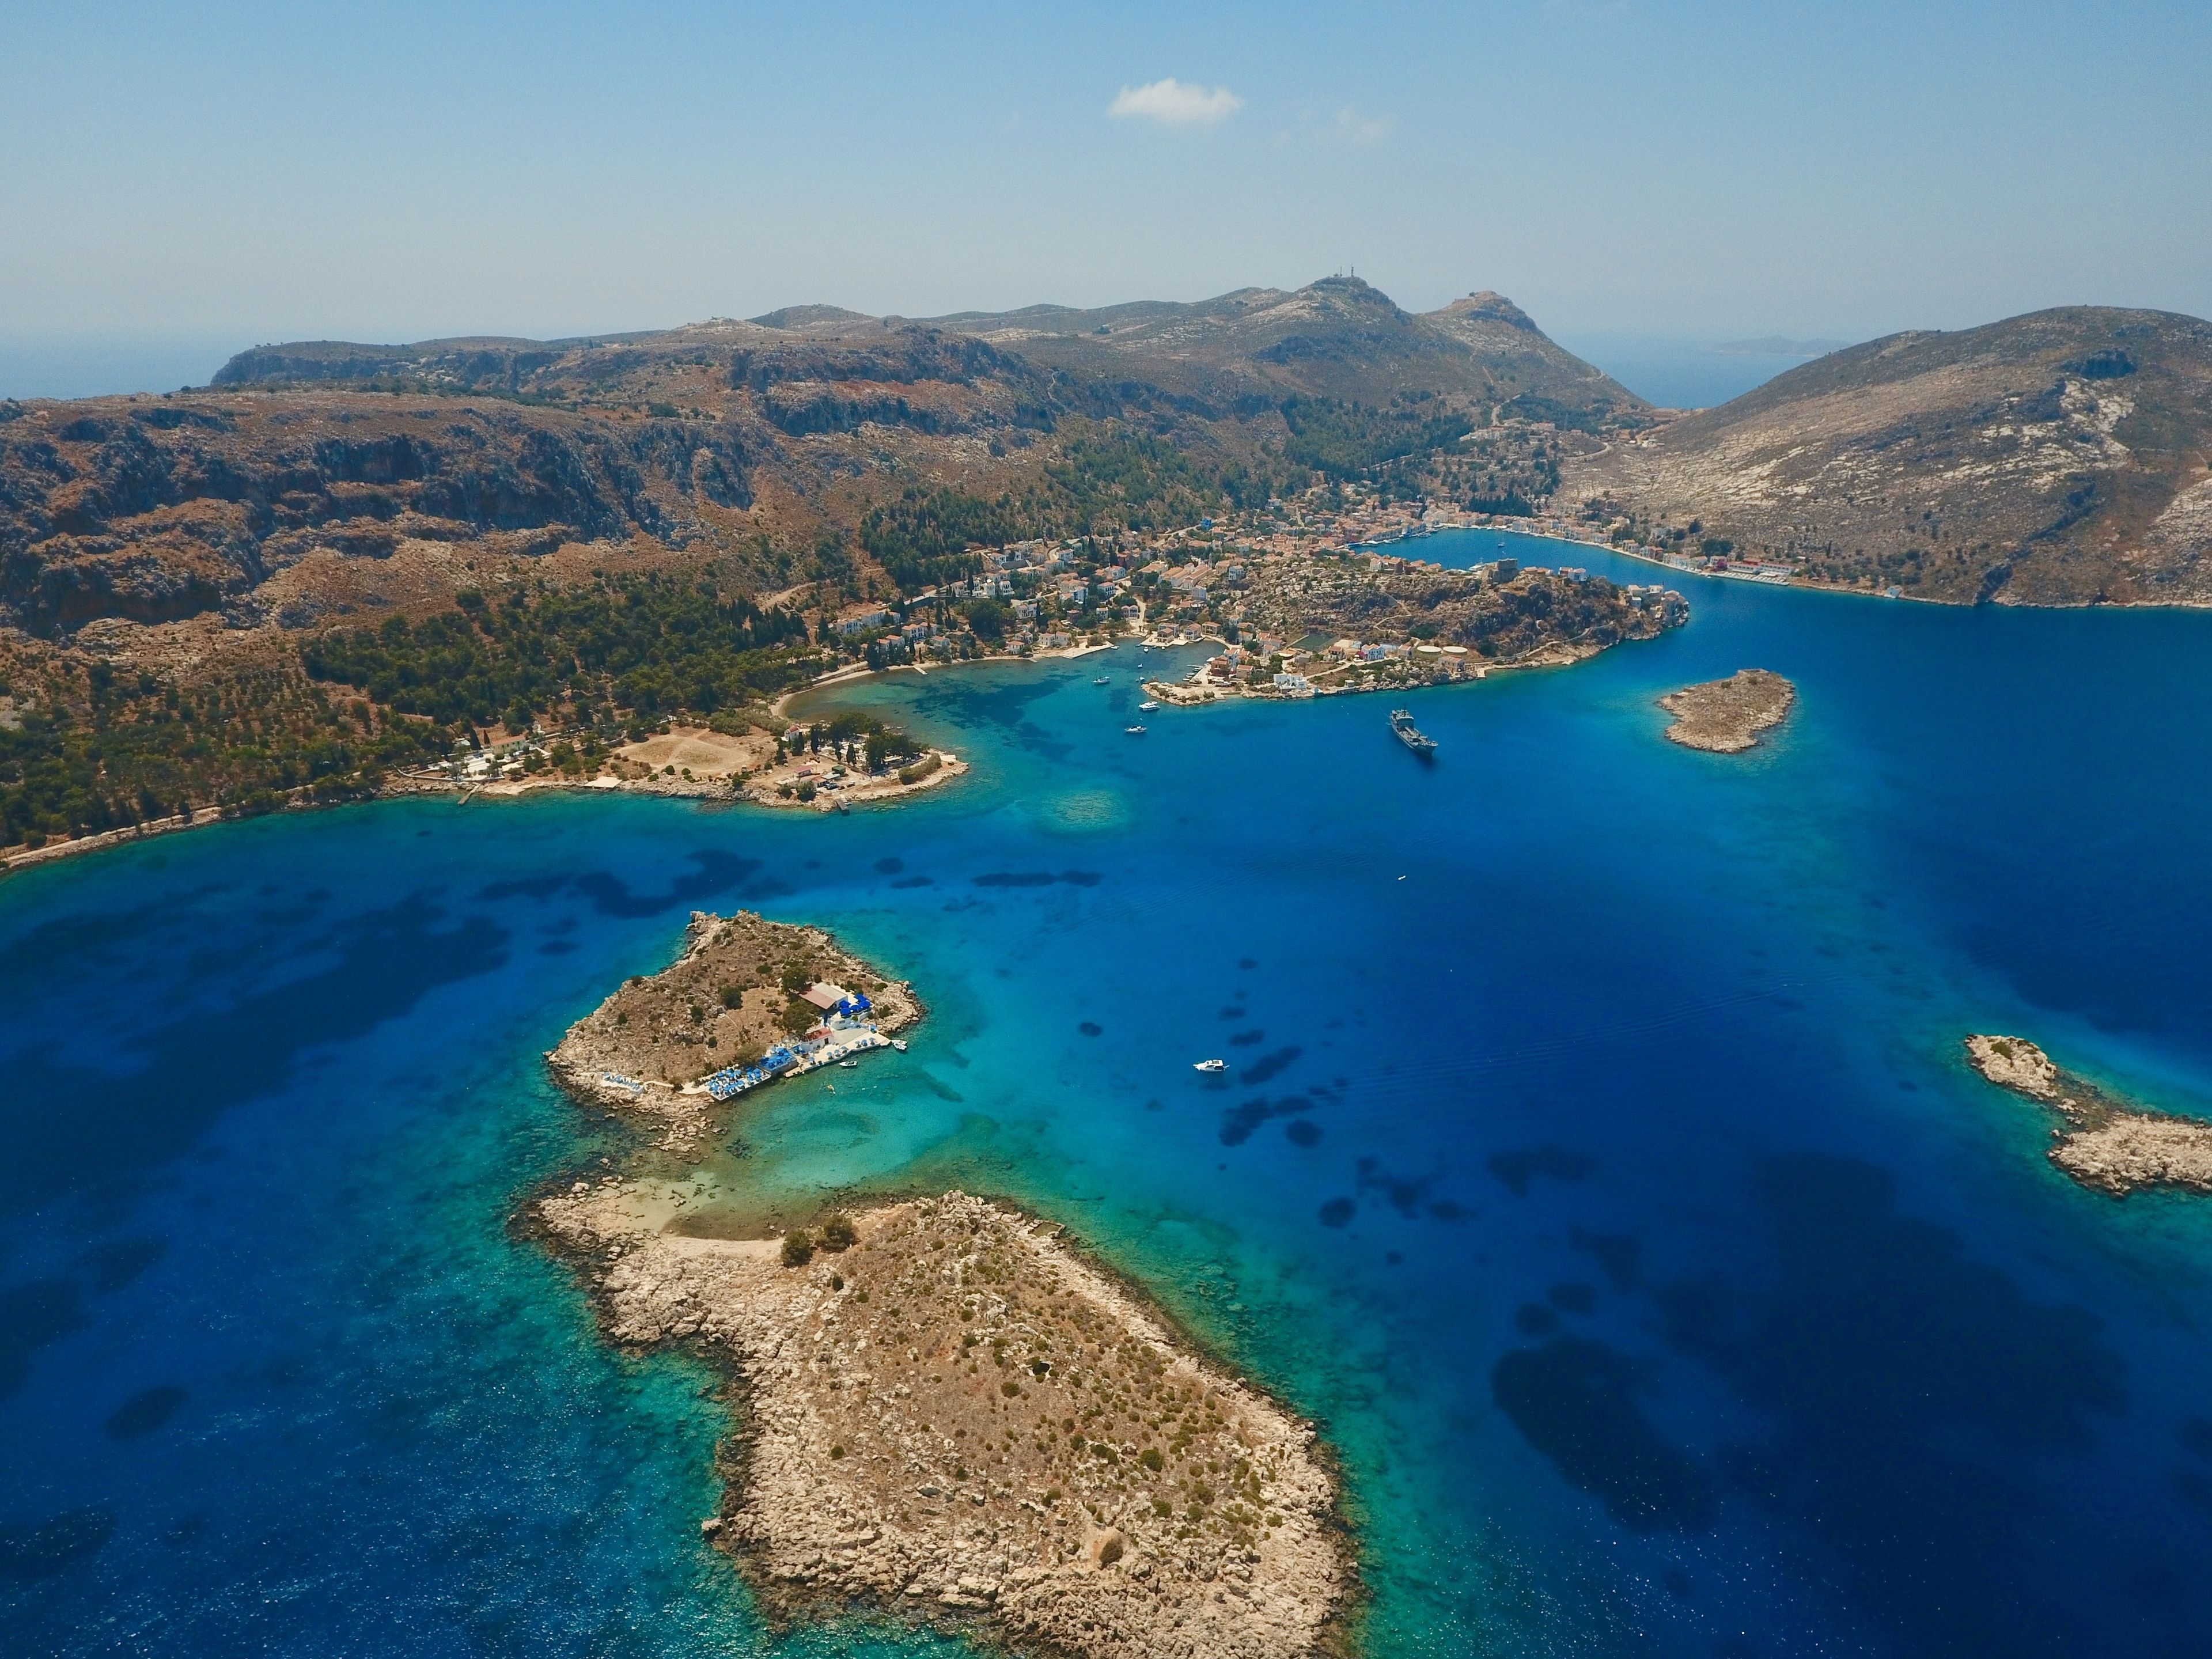 Private Boat Tour to Kastellorizo and Blue Cave From Kas